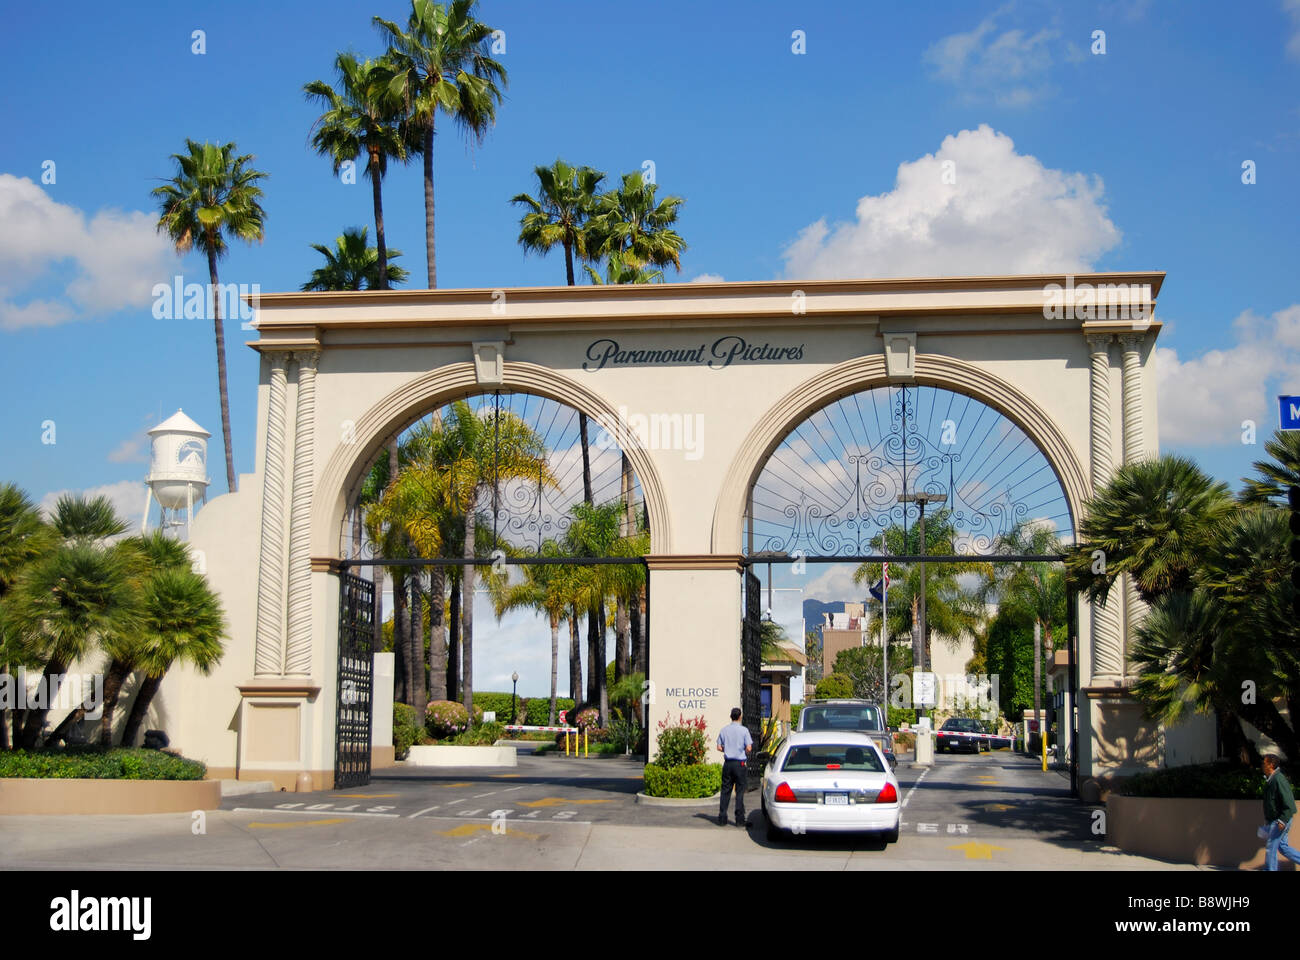 Ingresso al Paramount Studios, Melrose Avenue, Hollywood, Los Angeles, California, Stati Uniti d'America Foto Stock